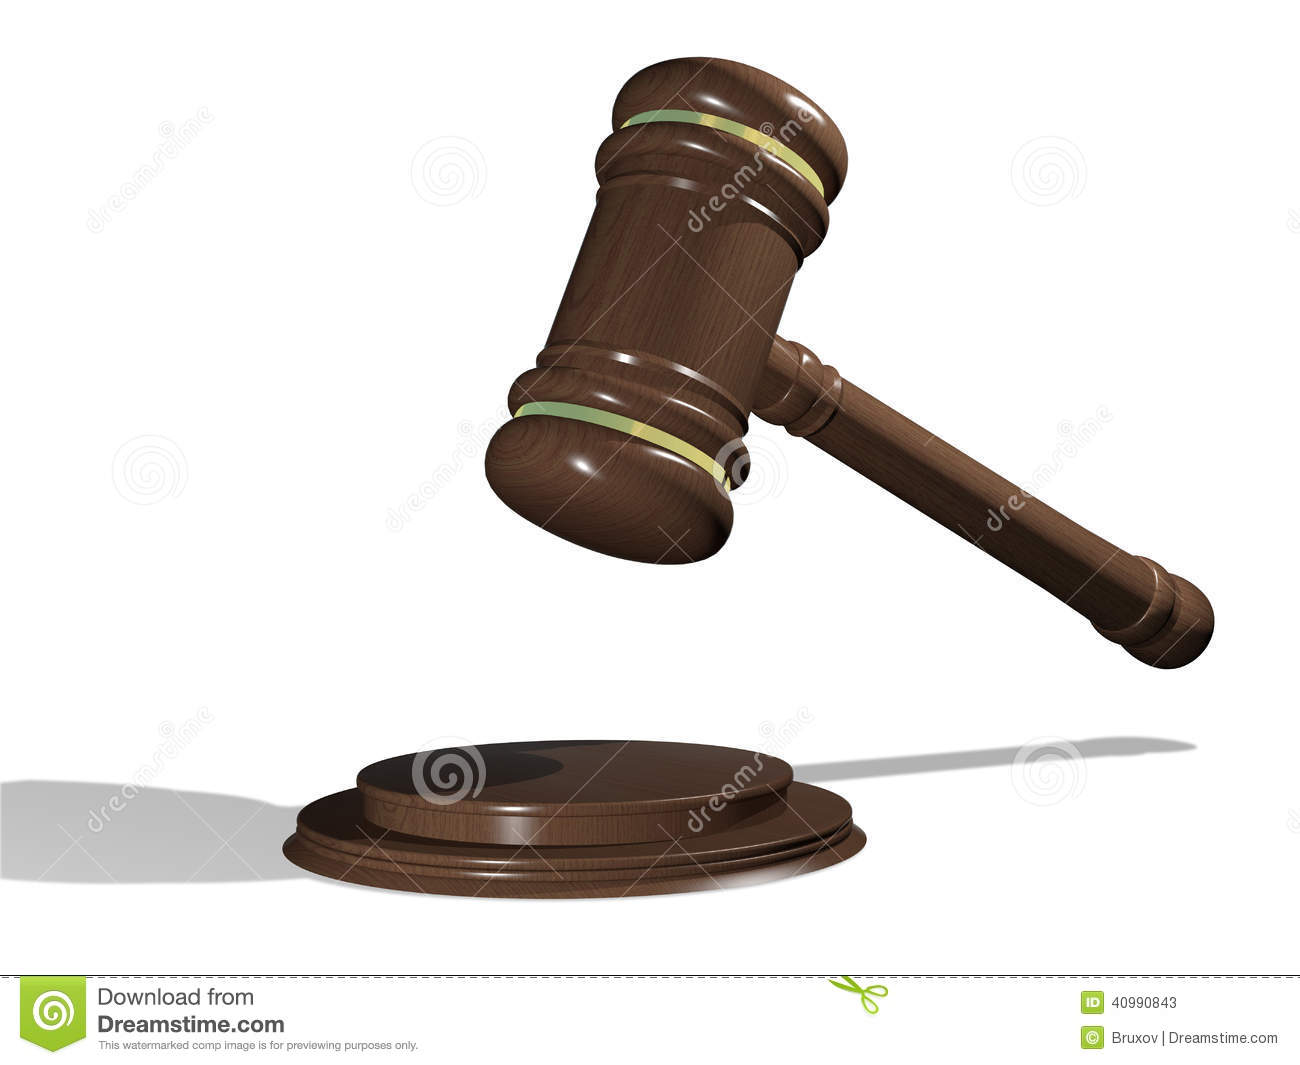 Stock photos mallet of judge image 10990093 - Illustration